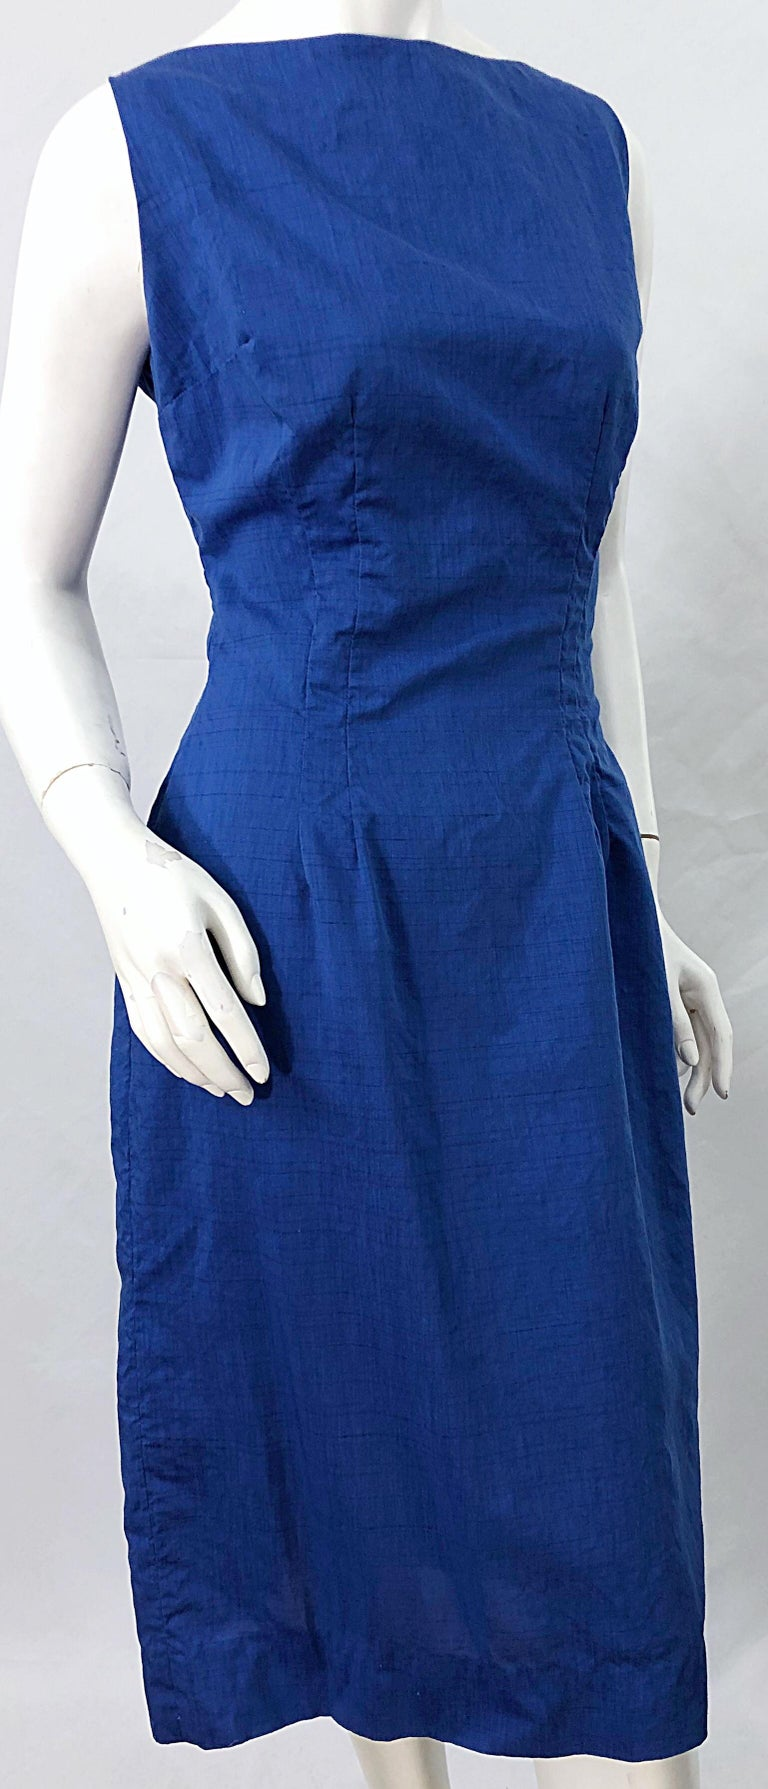 Chic 1950s Cobalt Blue Cotton High Neck Vintage 50s Sleeveless Wiggle Dress For Sale 5